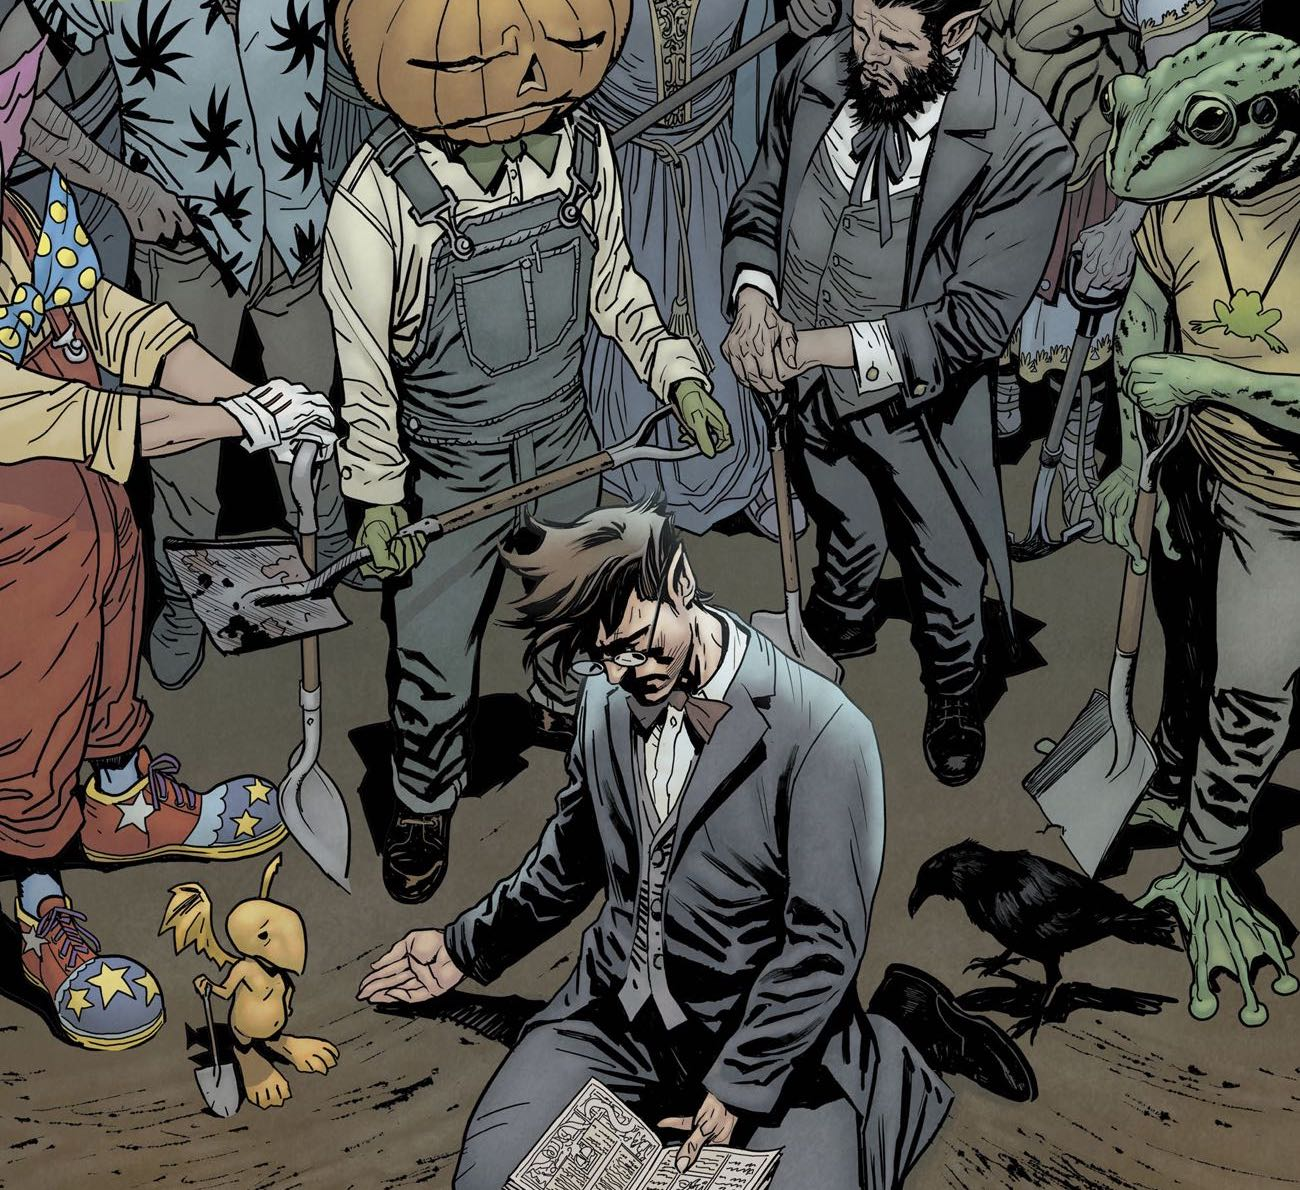 A fan-favorite Neil Gaiman character may have returned in 'The Dreaming' #17